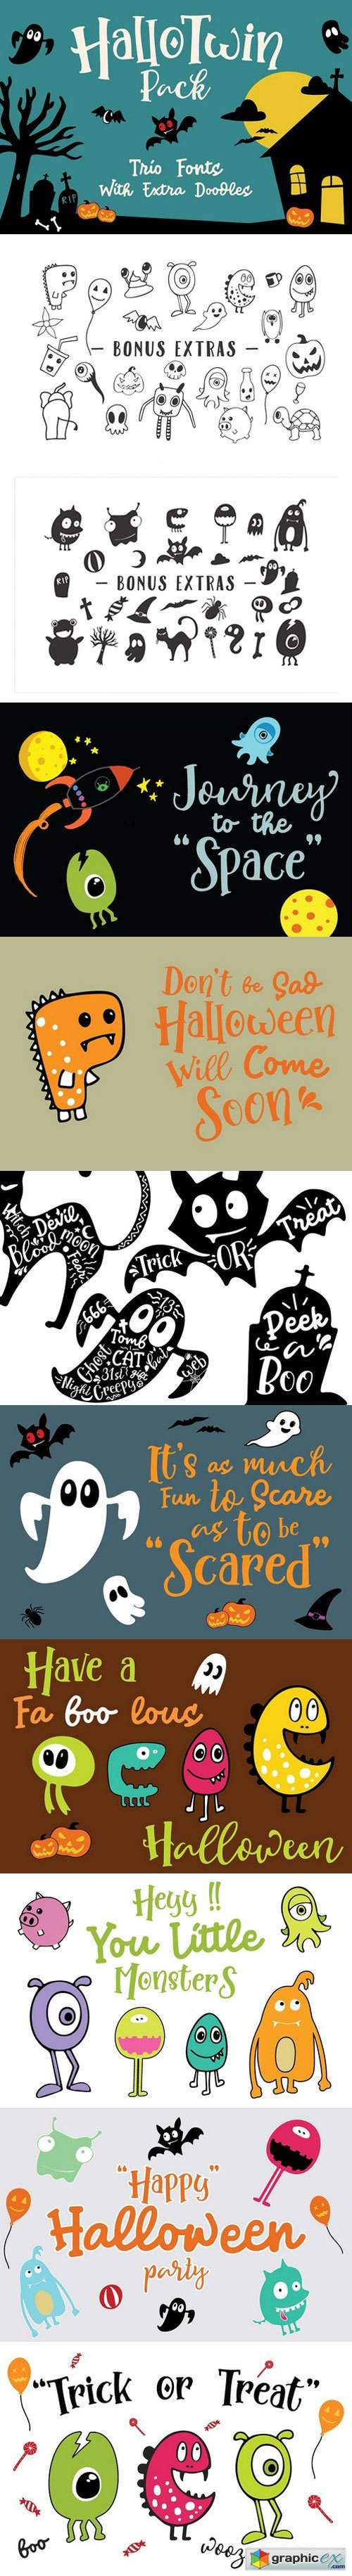 HalloTwin Font Pack